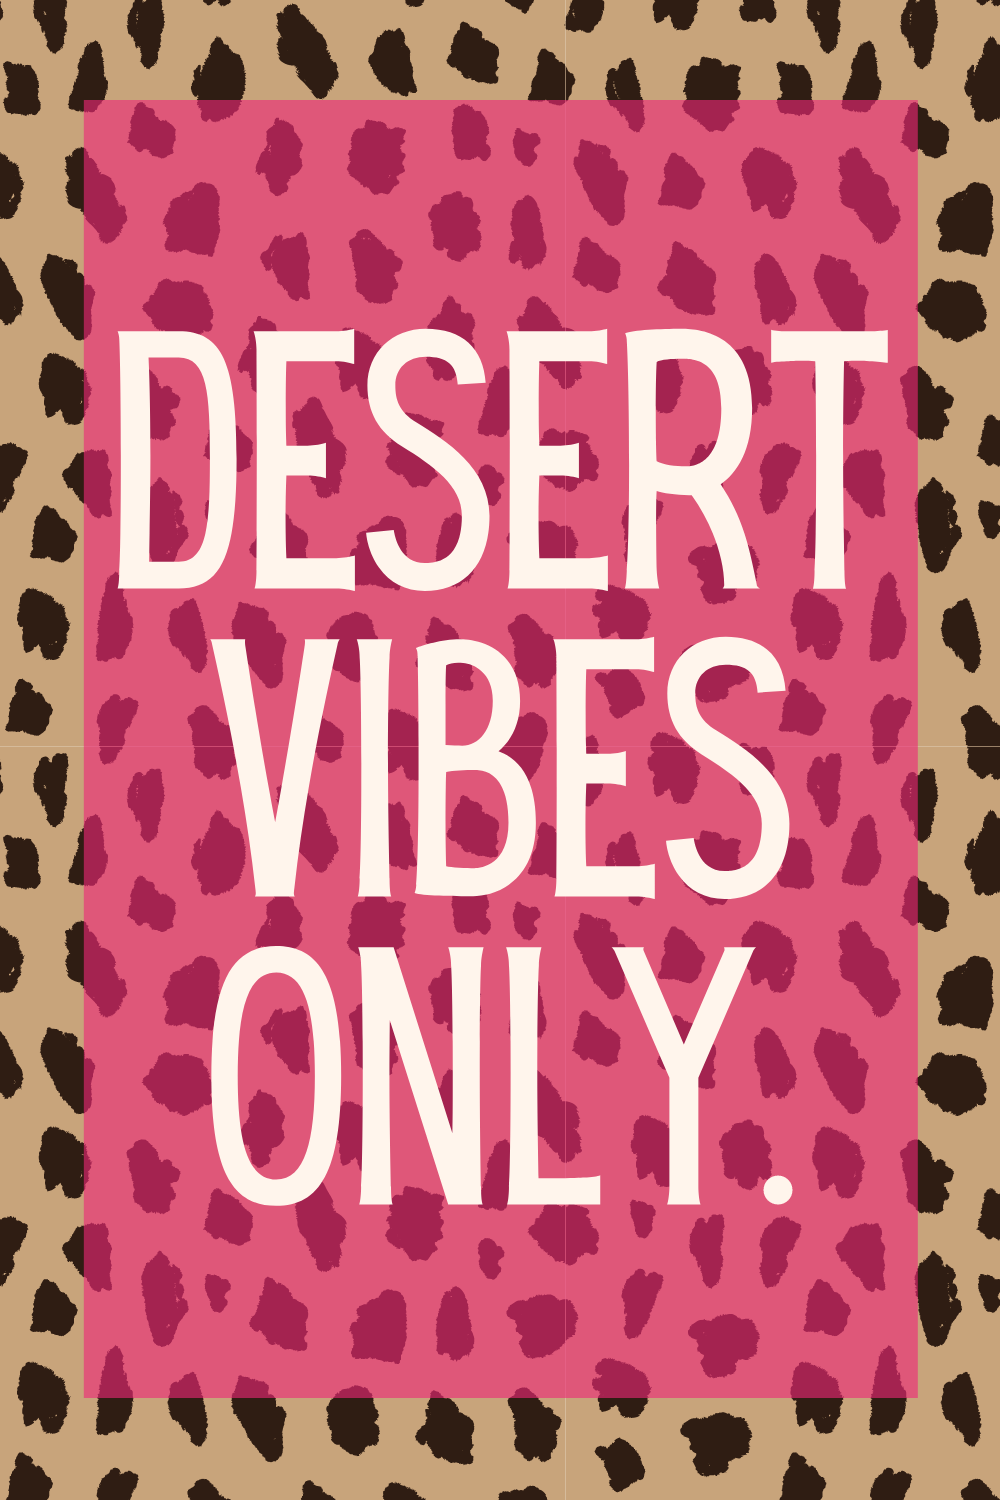 Cute Instagram Captions About The Desert